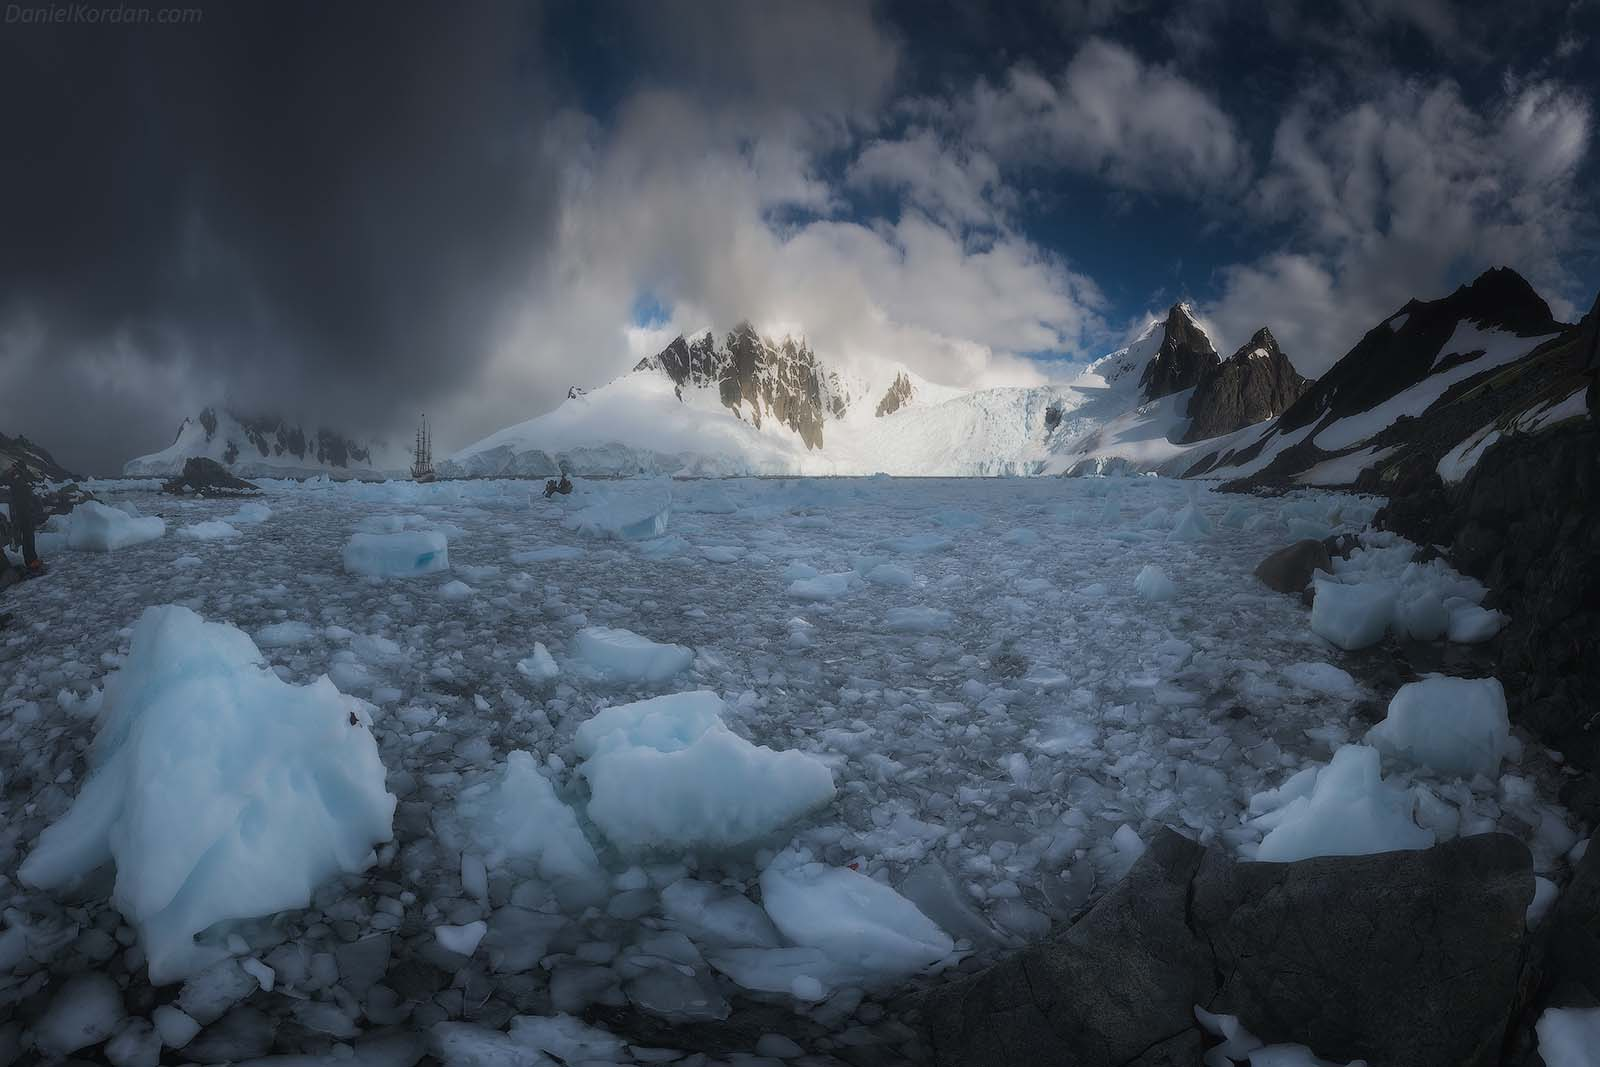 22 Day Antarctica Photography Expedition on Bark Europa - day 12